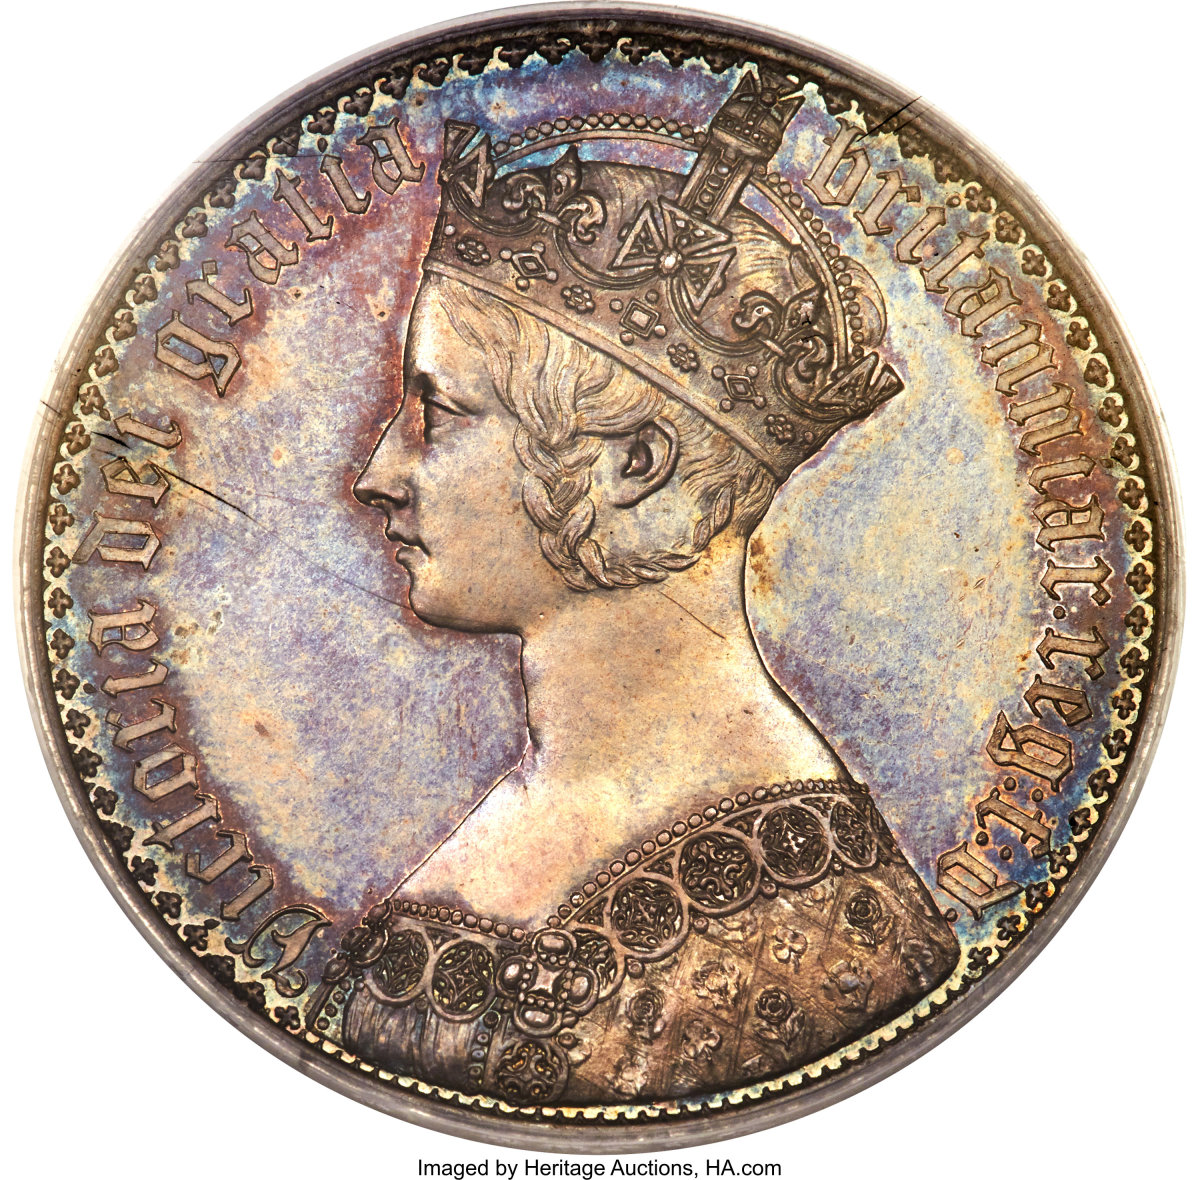 Delightful patina highlights 1847 Victoria proof crown (KM-744; S-3883) that comes graded PR63 PCGS. (Image courtesy Heritage Auctions)